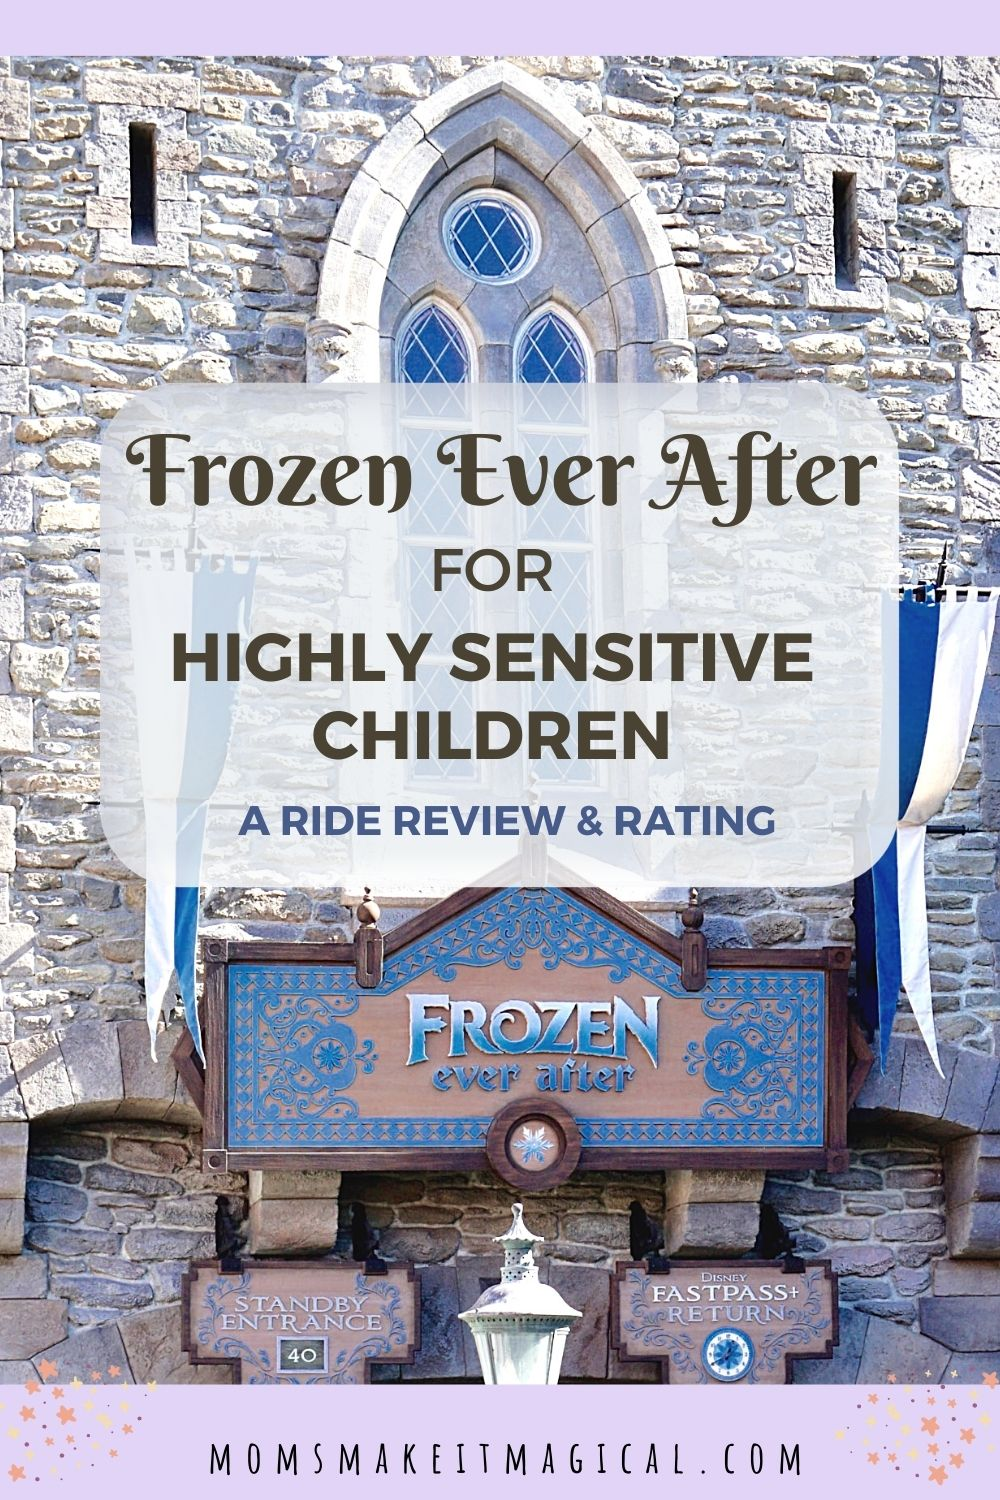 Frozen Ever After for highly Sensitive Kids, a ride review and rating. Photo of Frozen Ever Ride entrance. From moms make it magical dot com